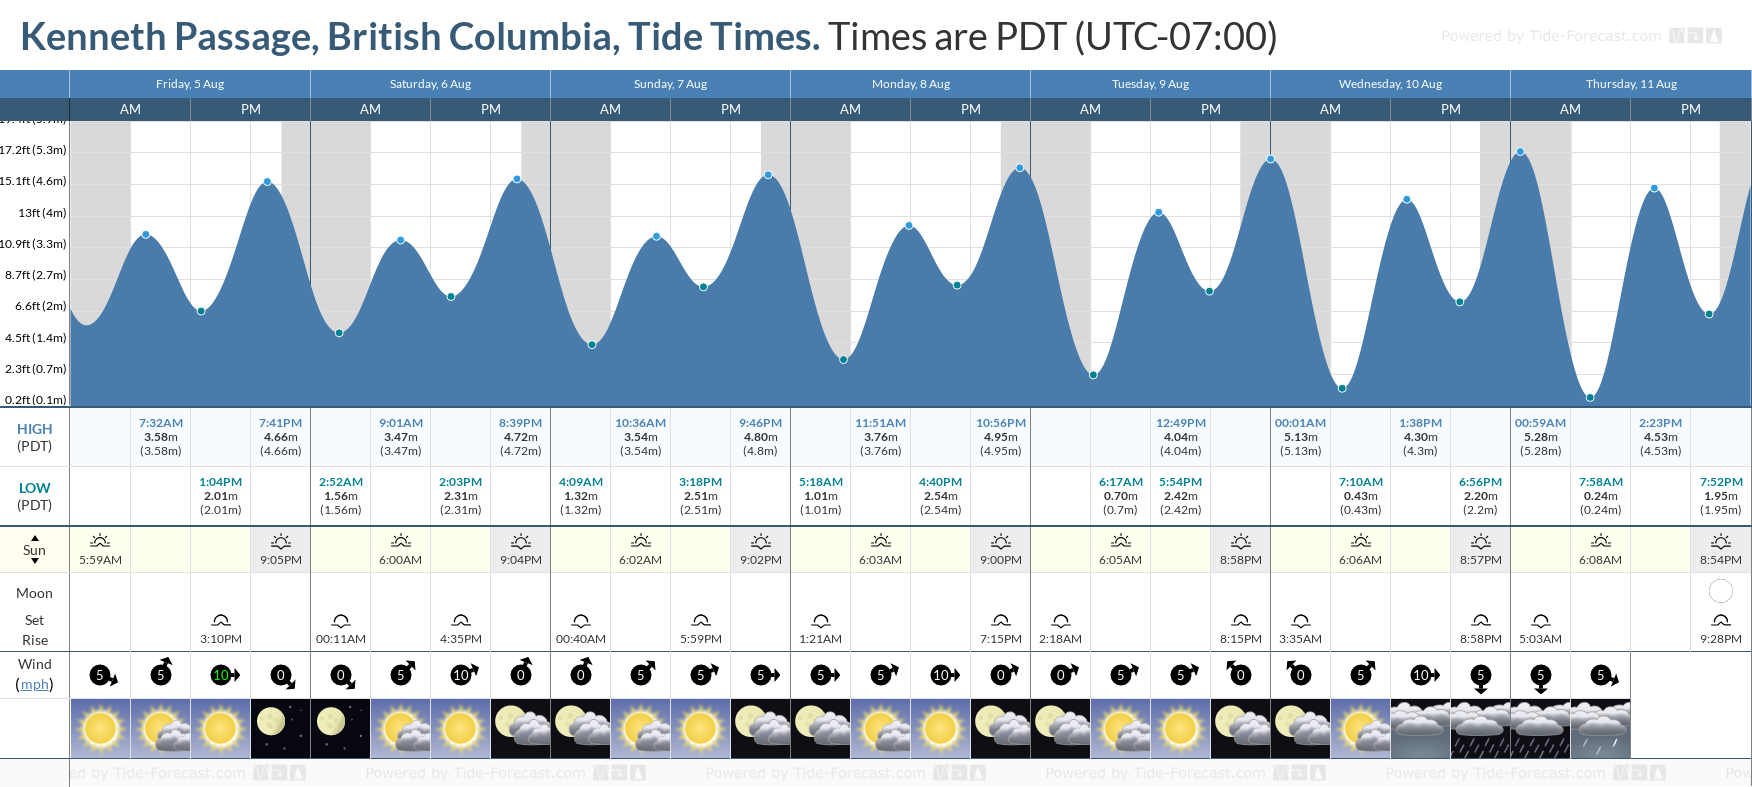 Kenneth Passage, British Columbia Tide Chart including high and low tide tide times for the next 7 days